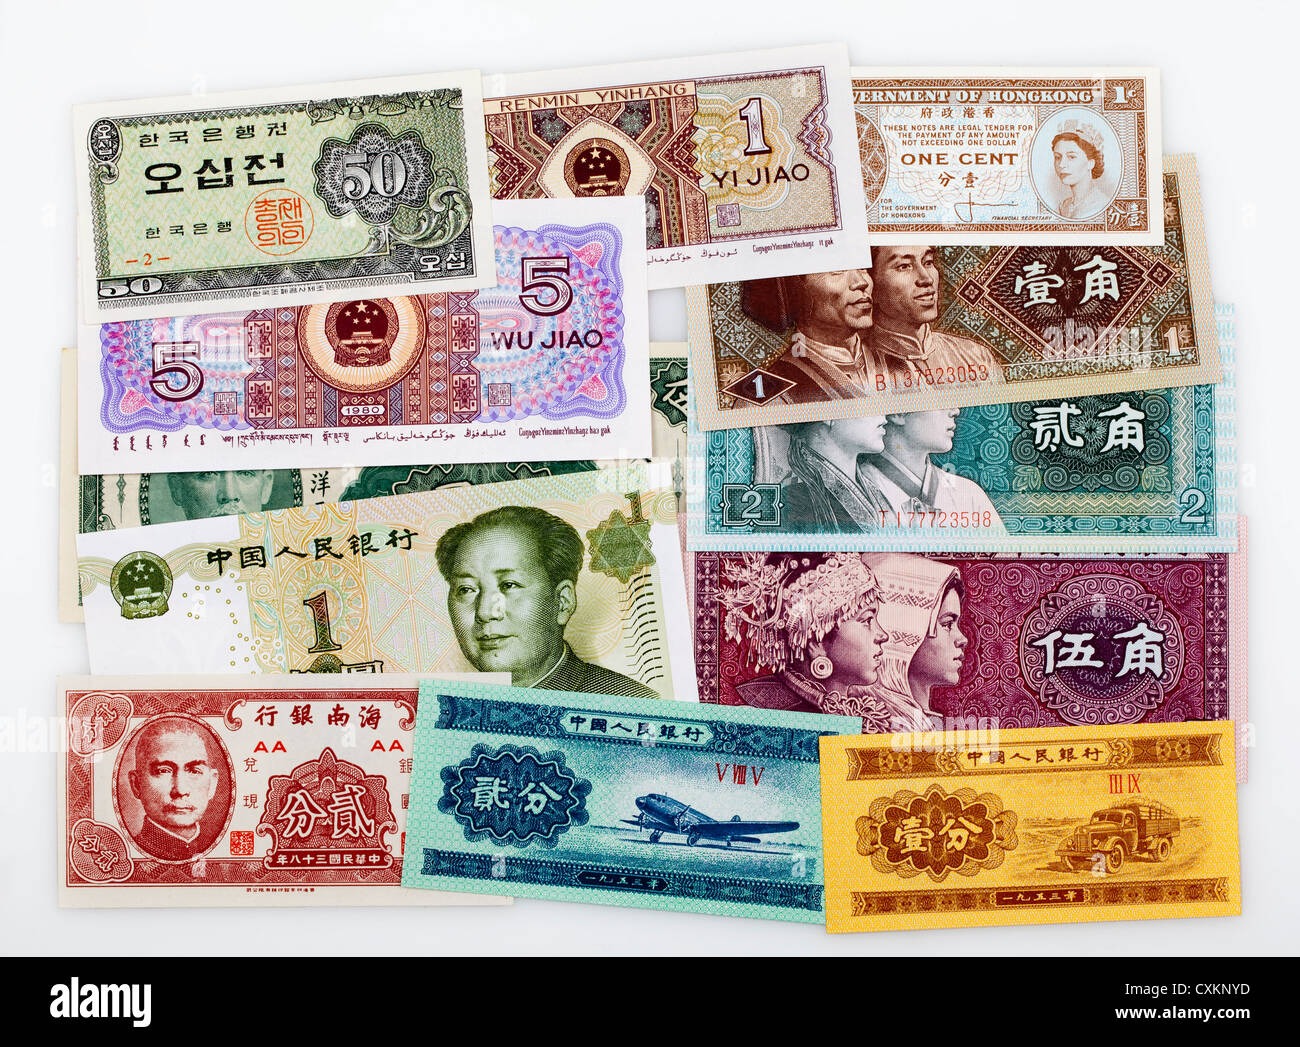 historic bank notes from China, - Stock Image